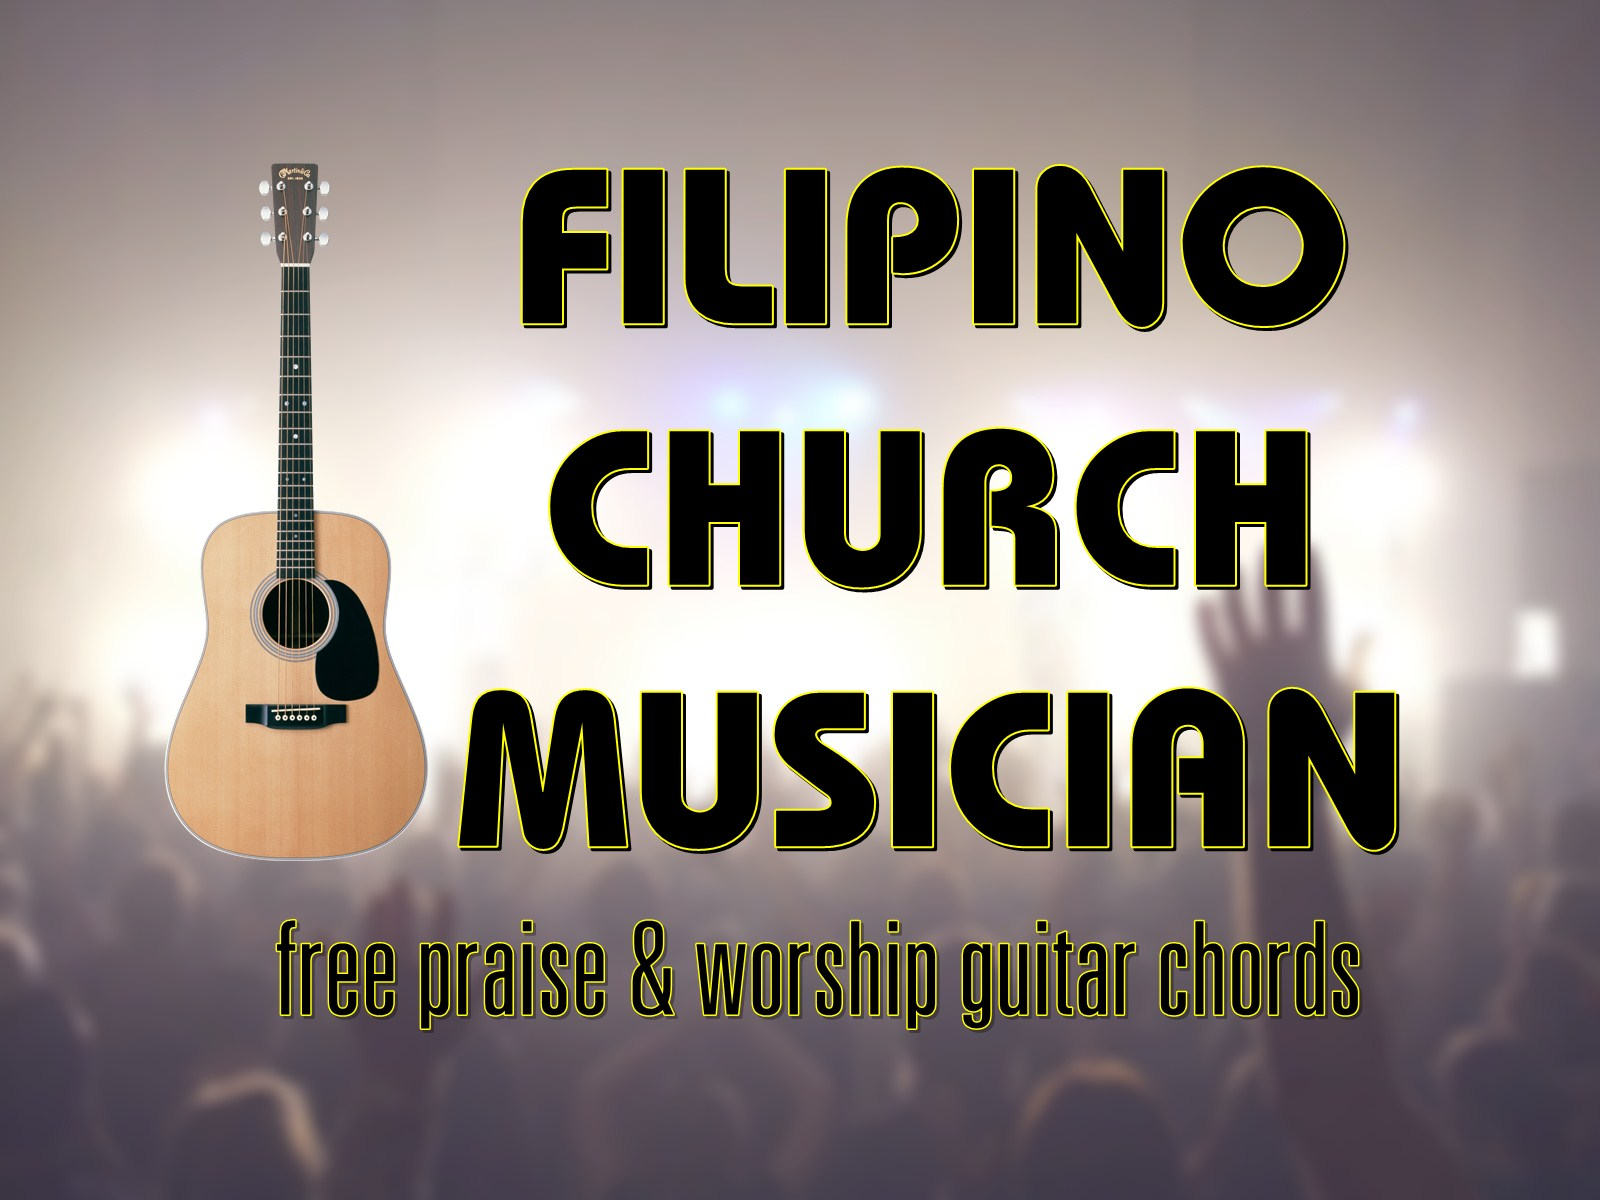 Filipino church musician planetshakers no other name guitar chords hexwebz Image collections